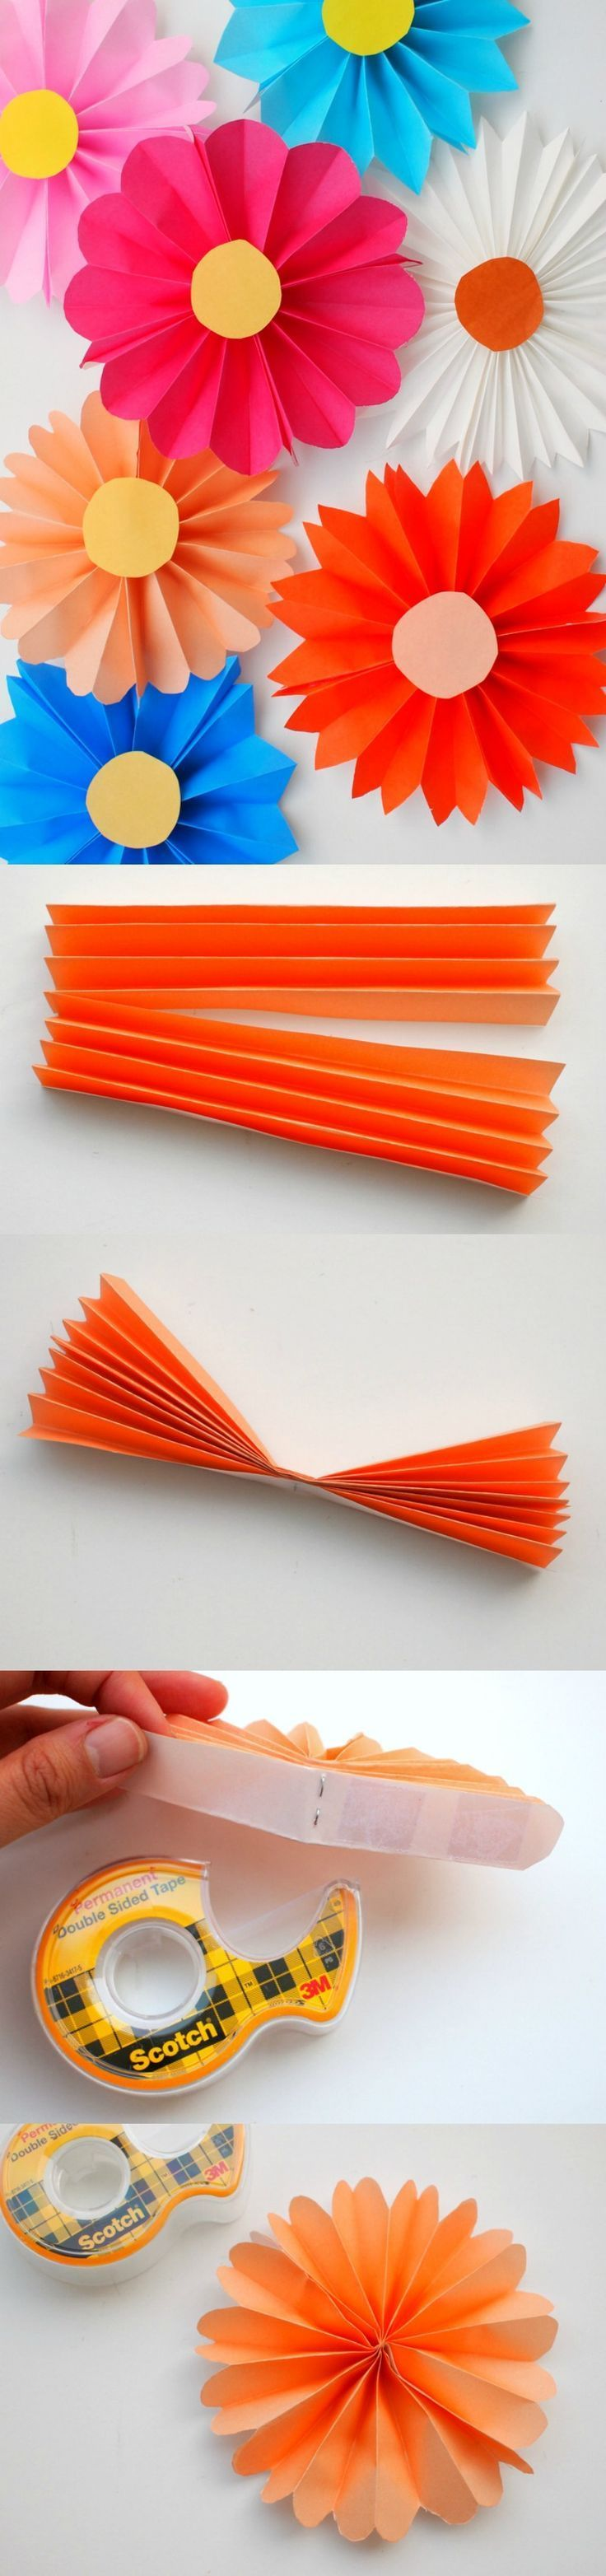 Accordion paper flowers origami patterns origami and bald hairstyles accordion paper flowers mightylinksfo